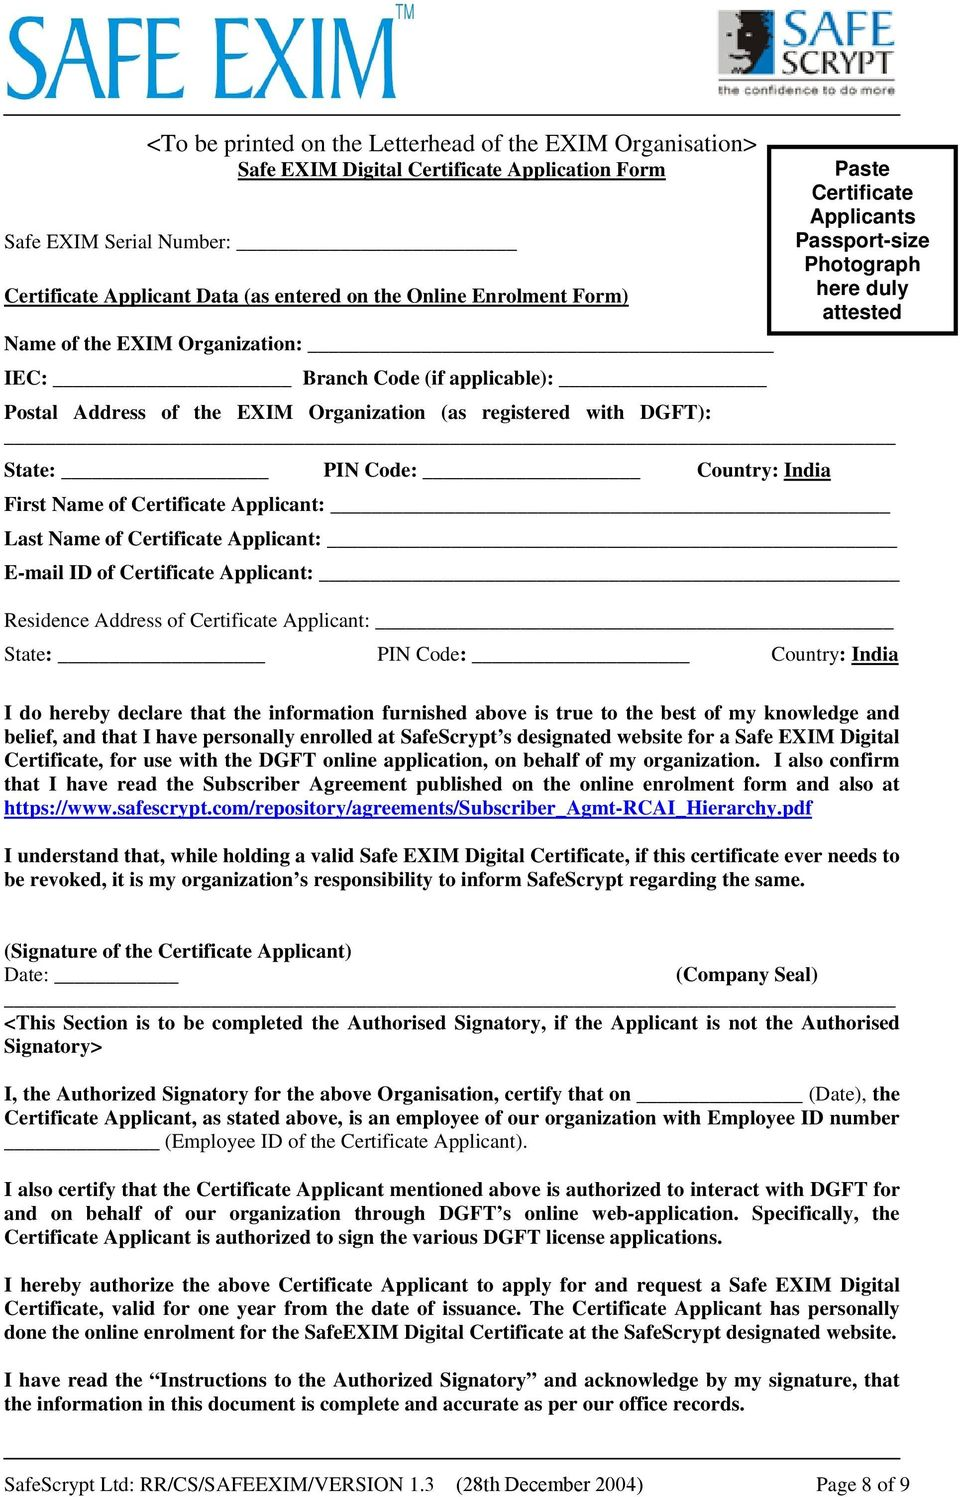 DGFT): State: PIN Code: Country: India First Name of Certificate Applicant: Last Name of Certificate Applicant: E-mail ID of Certificate Applicant: Residence Address of Certificate Applicant: State: